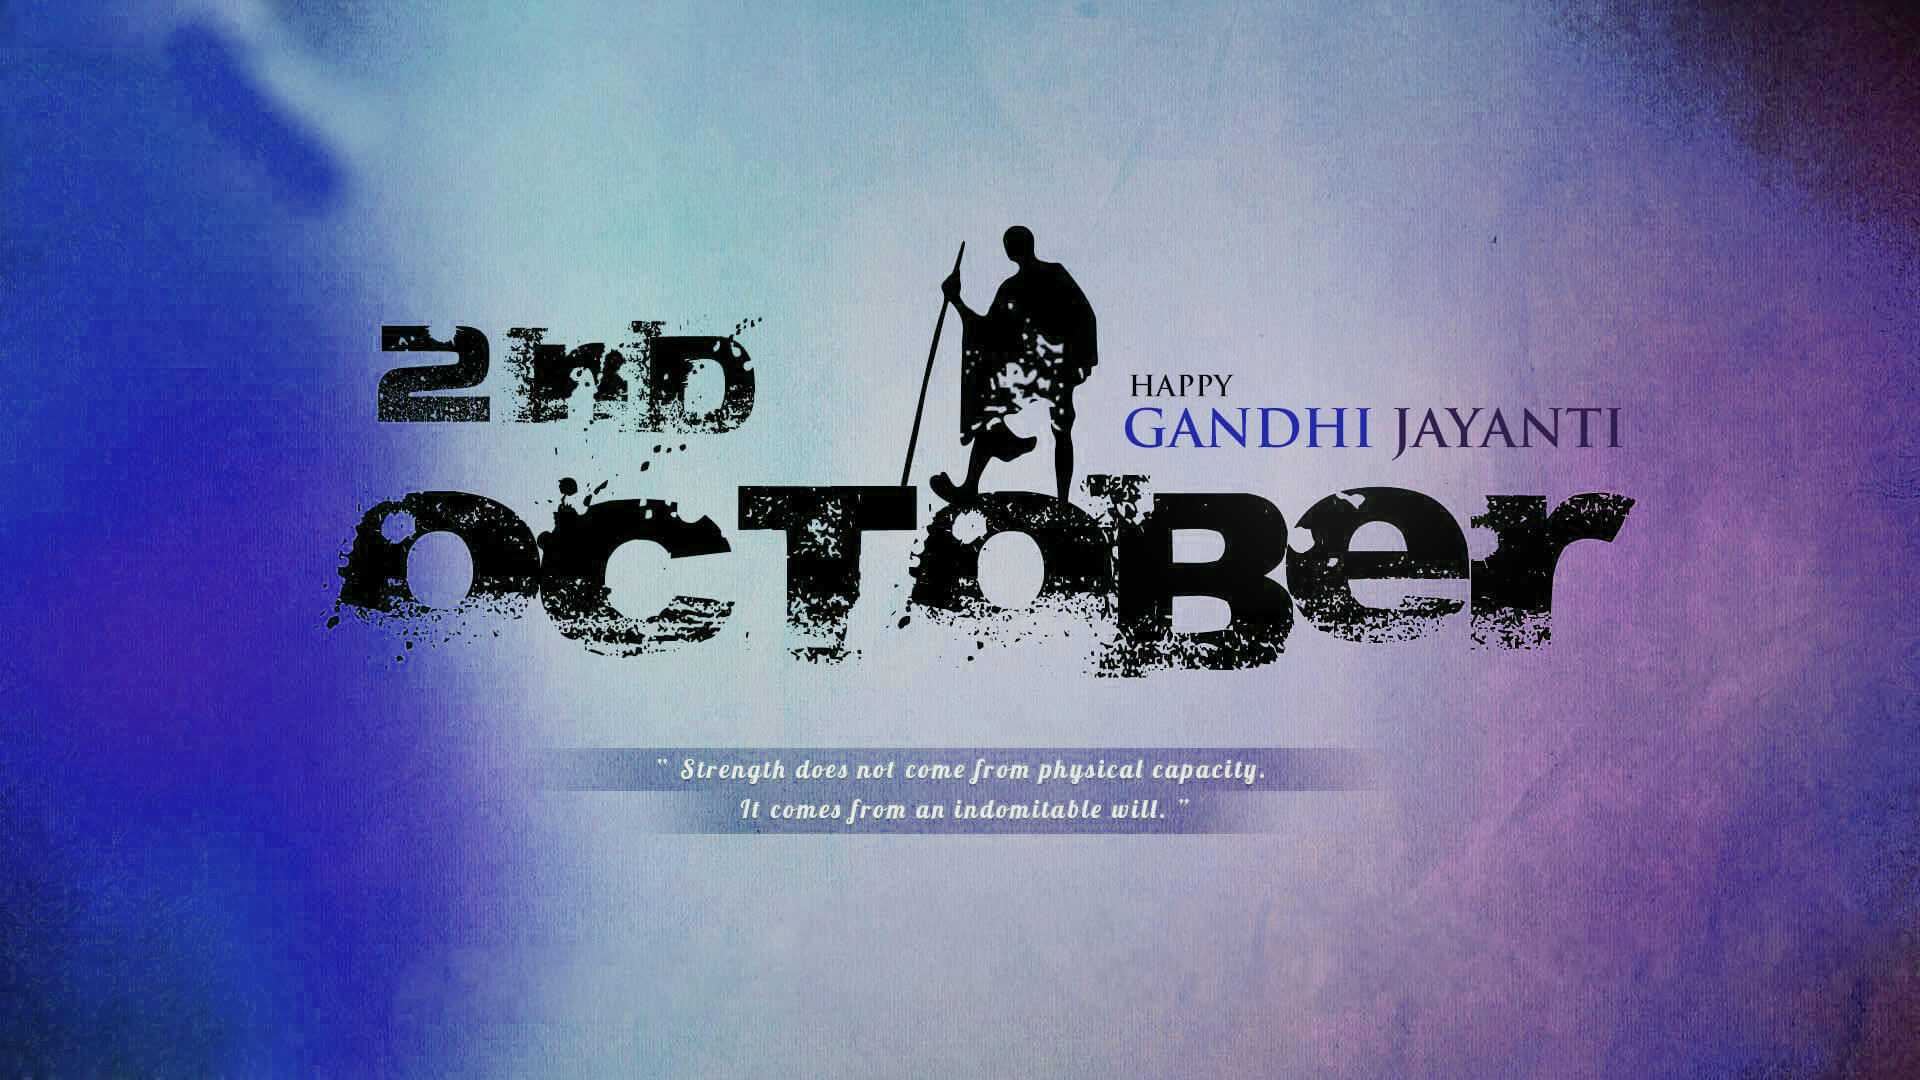 gandhi jayanti wishes october 2 new hd wallpaper